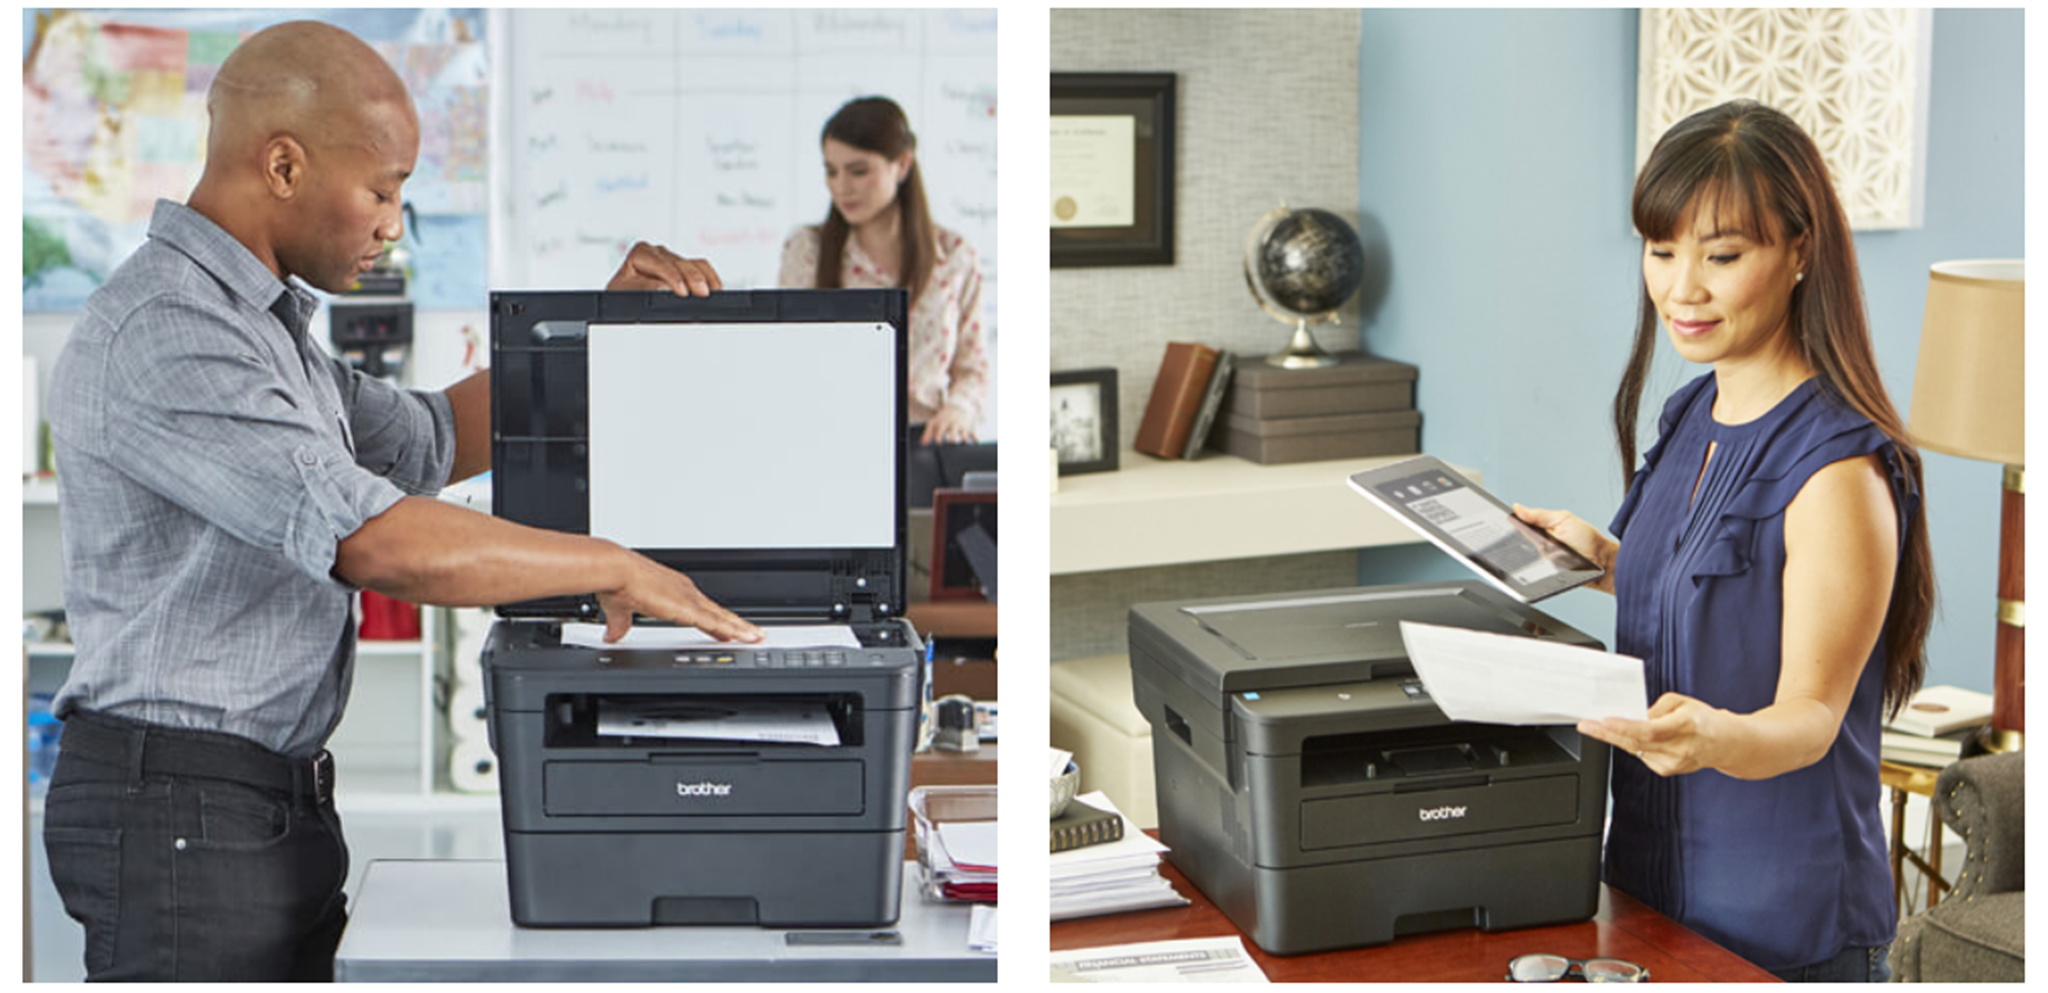 Staples.com – Brother USB, Wireless, Network Ready Laser Printer Only $84.99, Reg $169.99 + Free Store Pickup!